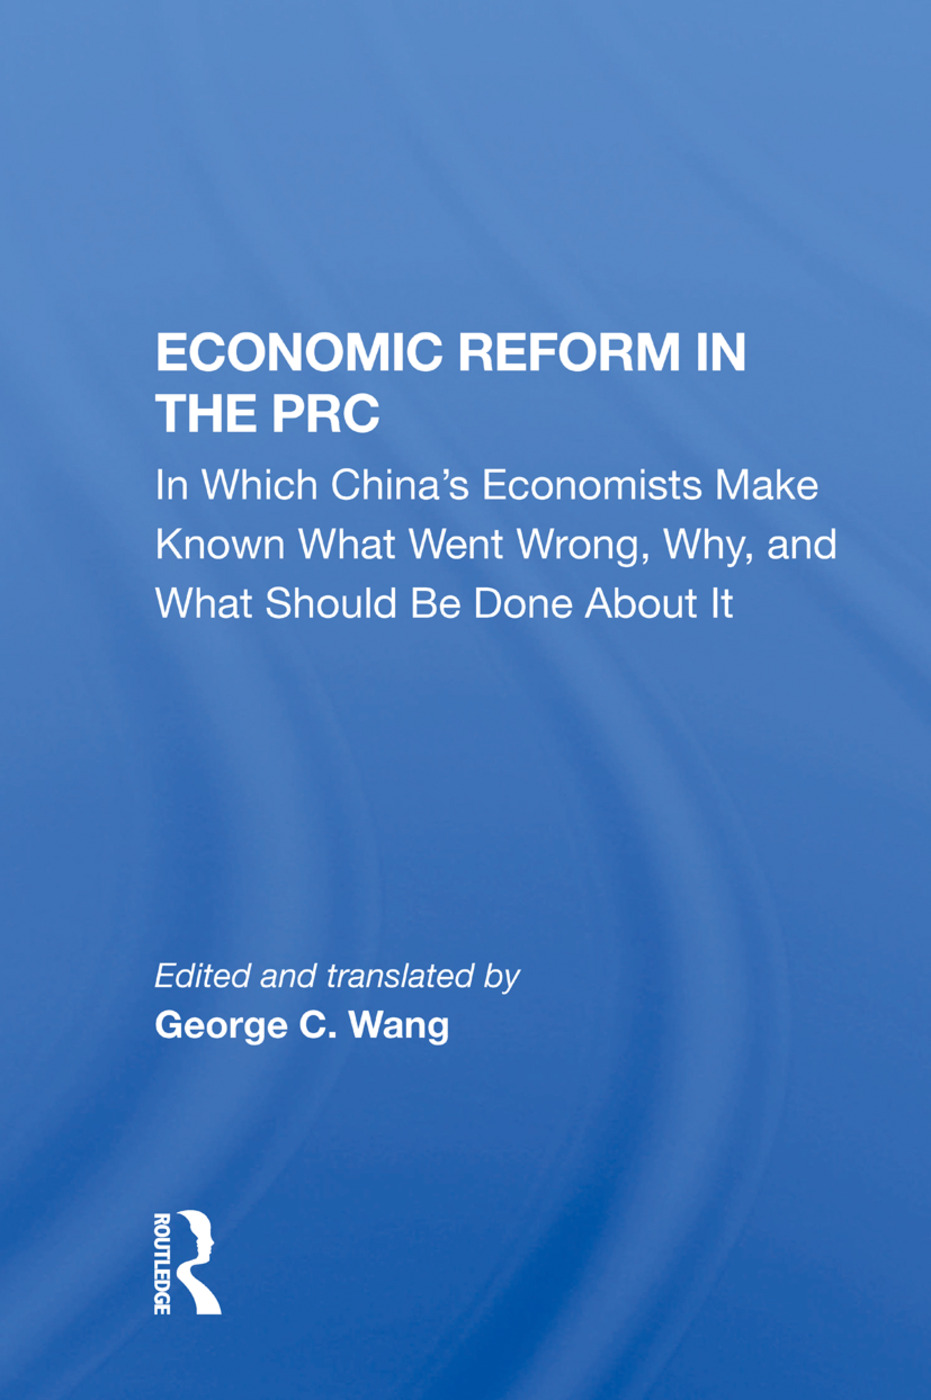 Economic Reform In The Prc: In Which China's Economists Make Known What Went Wrong, Why, And What Should Be Done About It, 1st Edition (Paperback) book cover